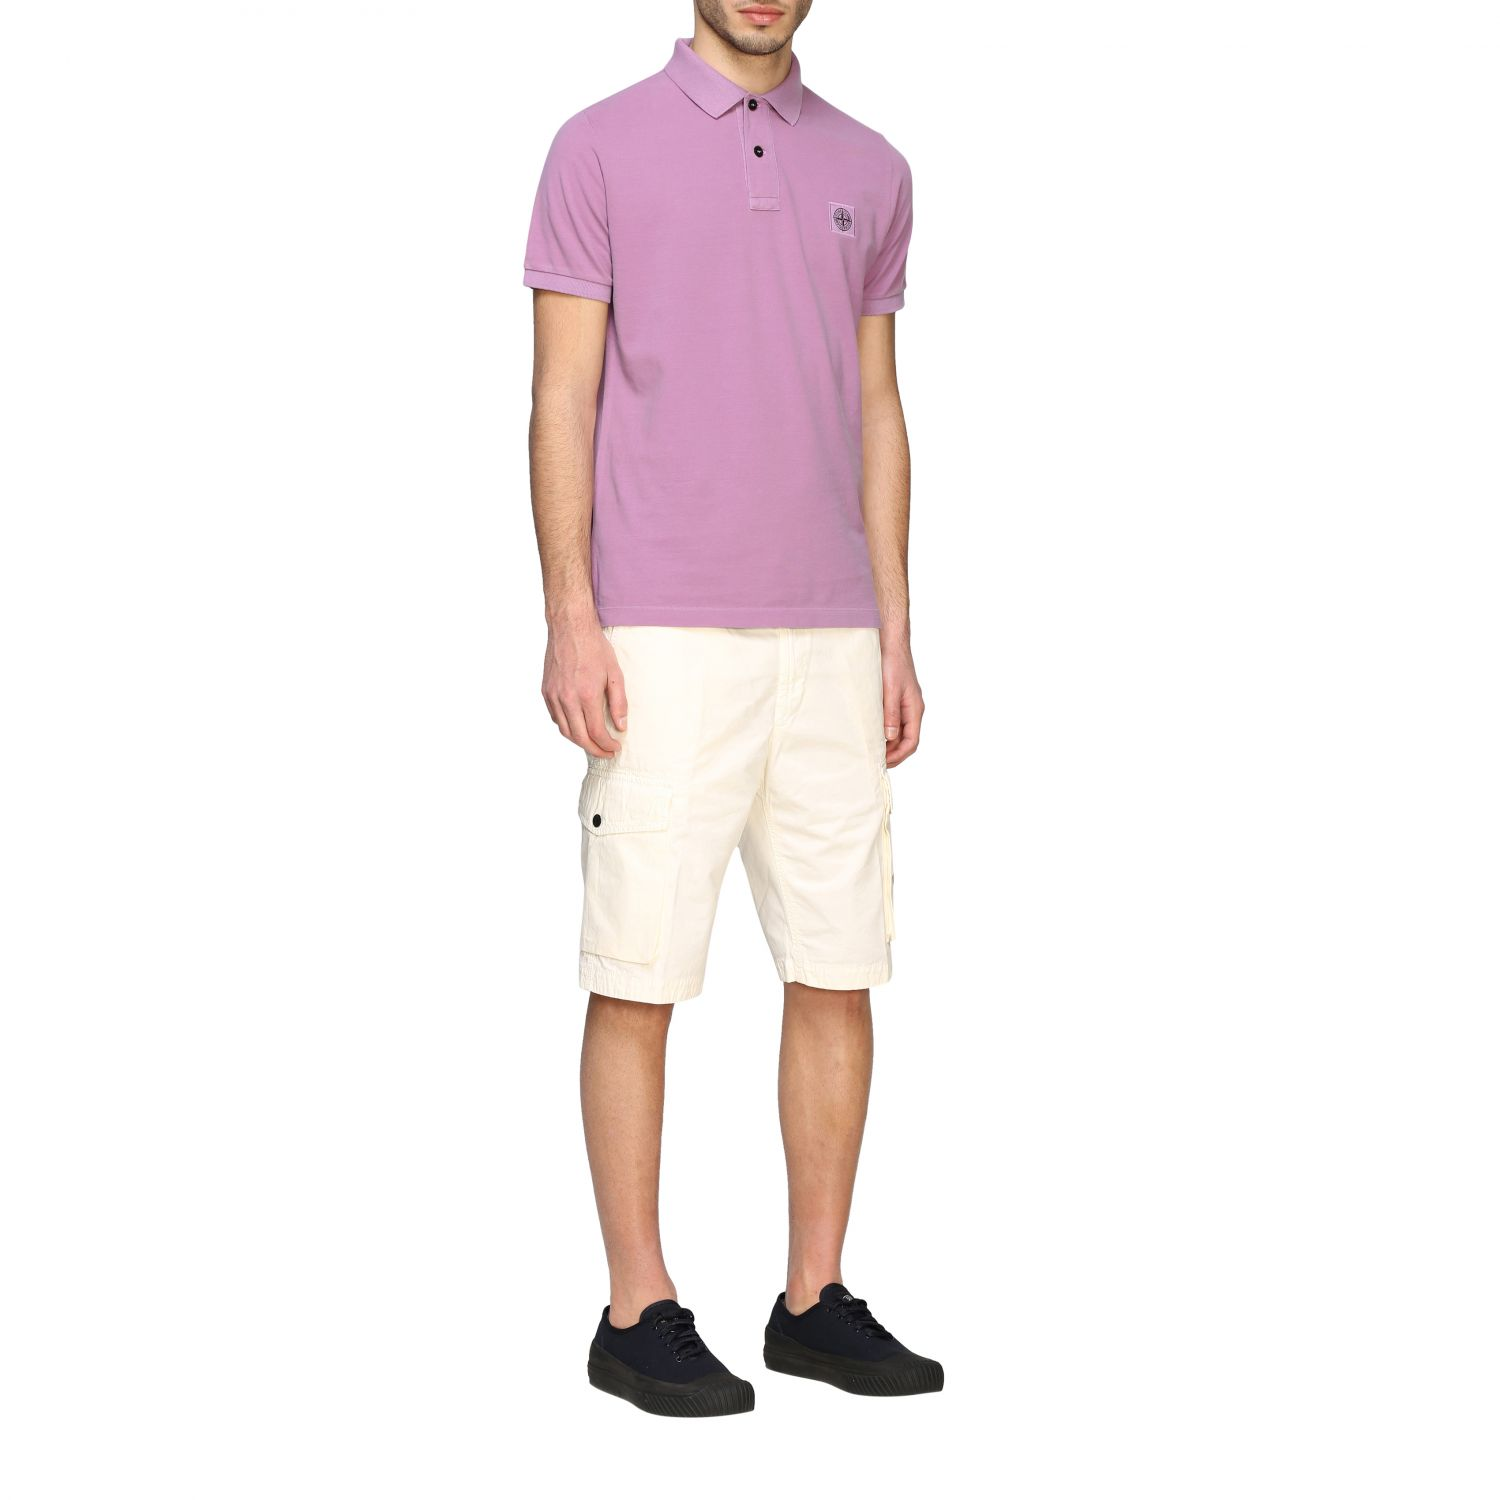 Stone Island short-sleeved polo shirt pink 2